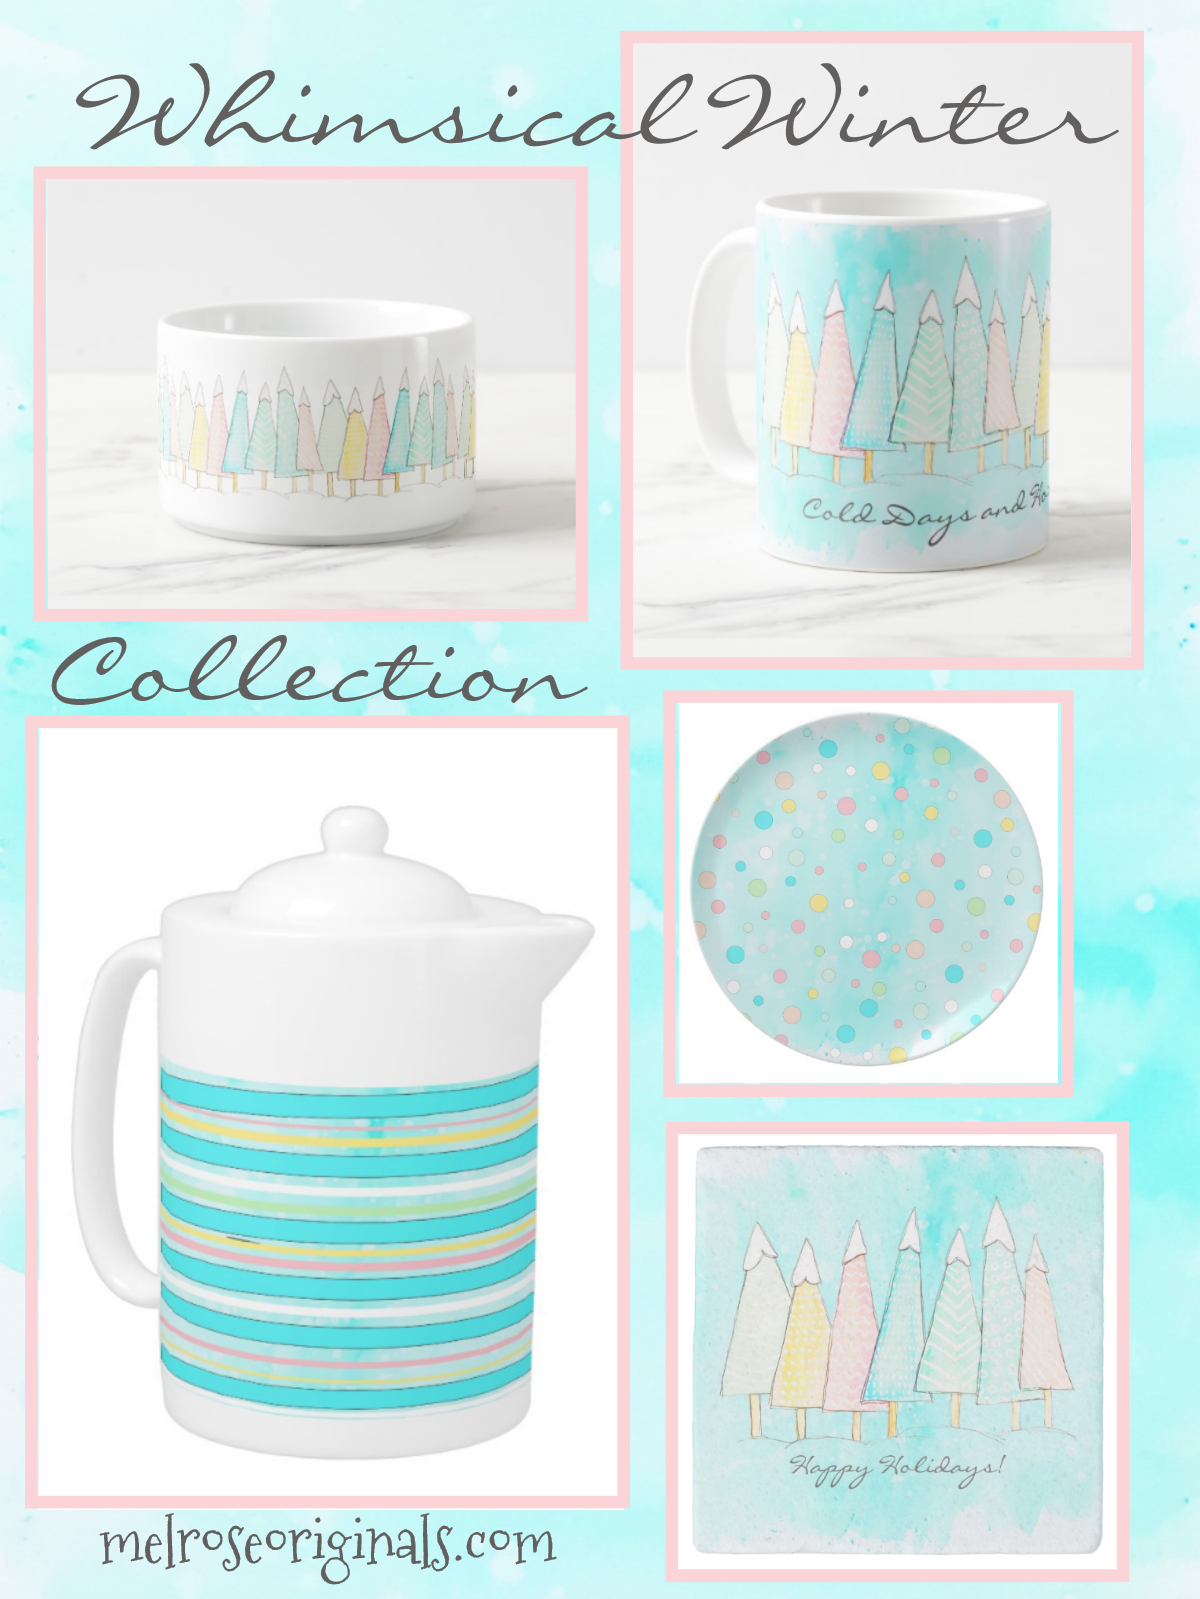 product grid image of whimsical winter pastel holiday collection